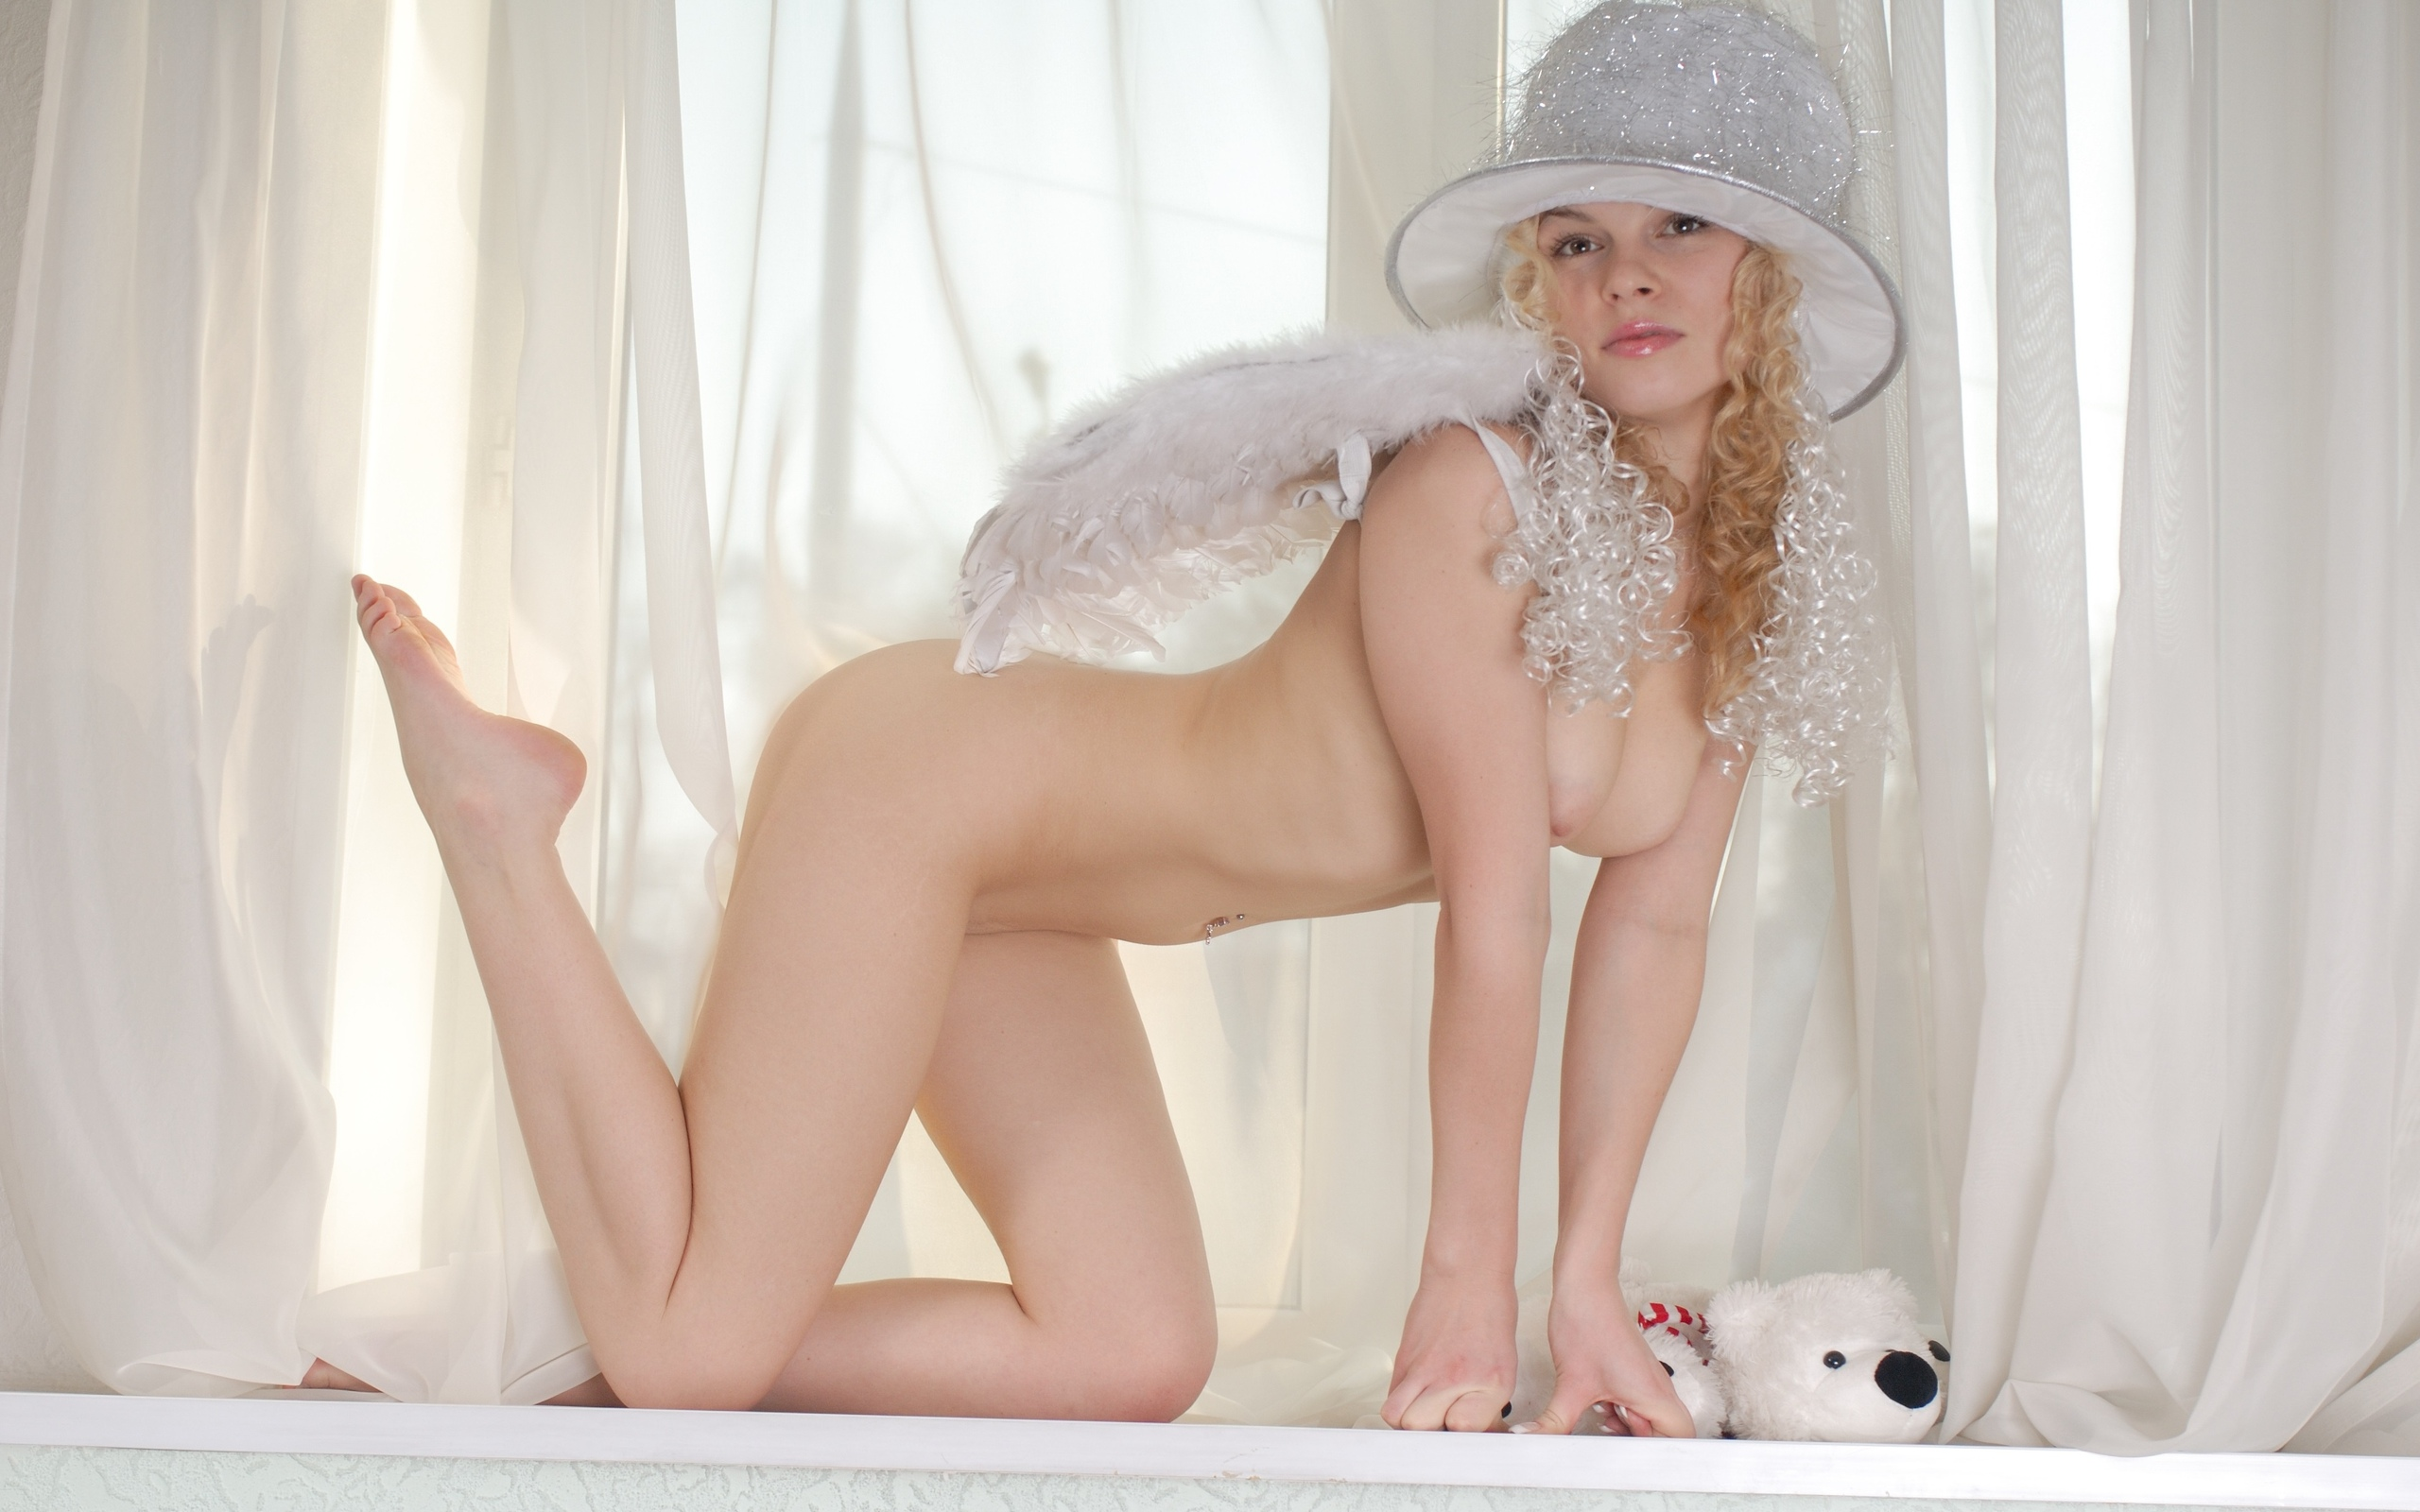 Gifxv com riley reynolds all day anal evil angel hot nude